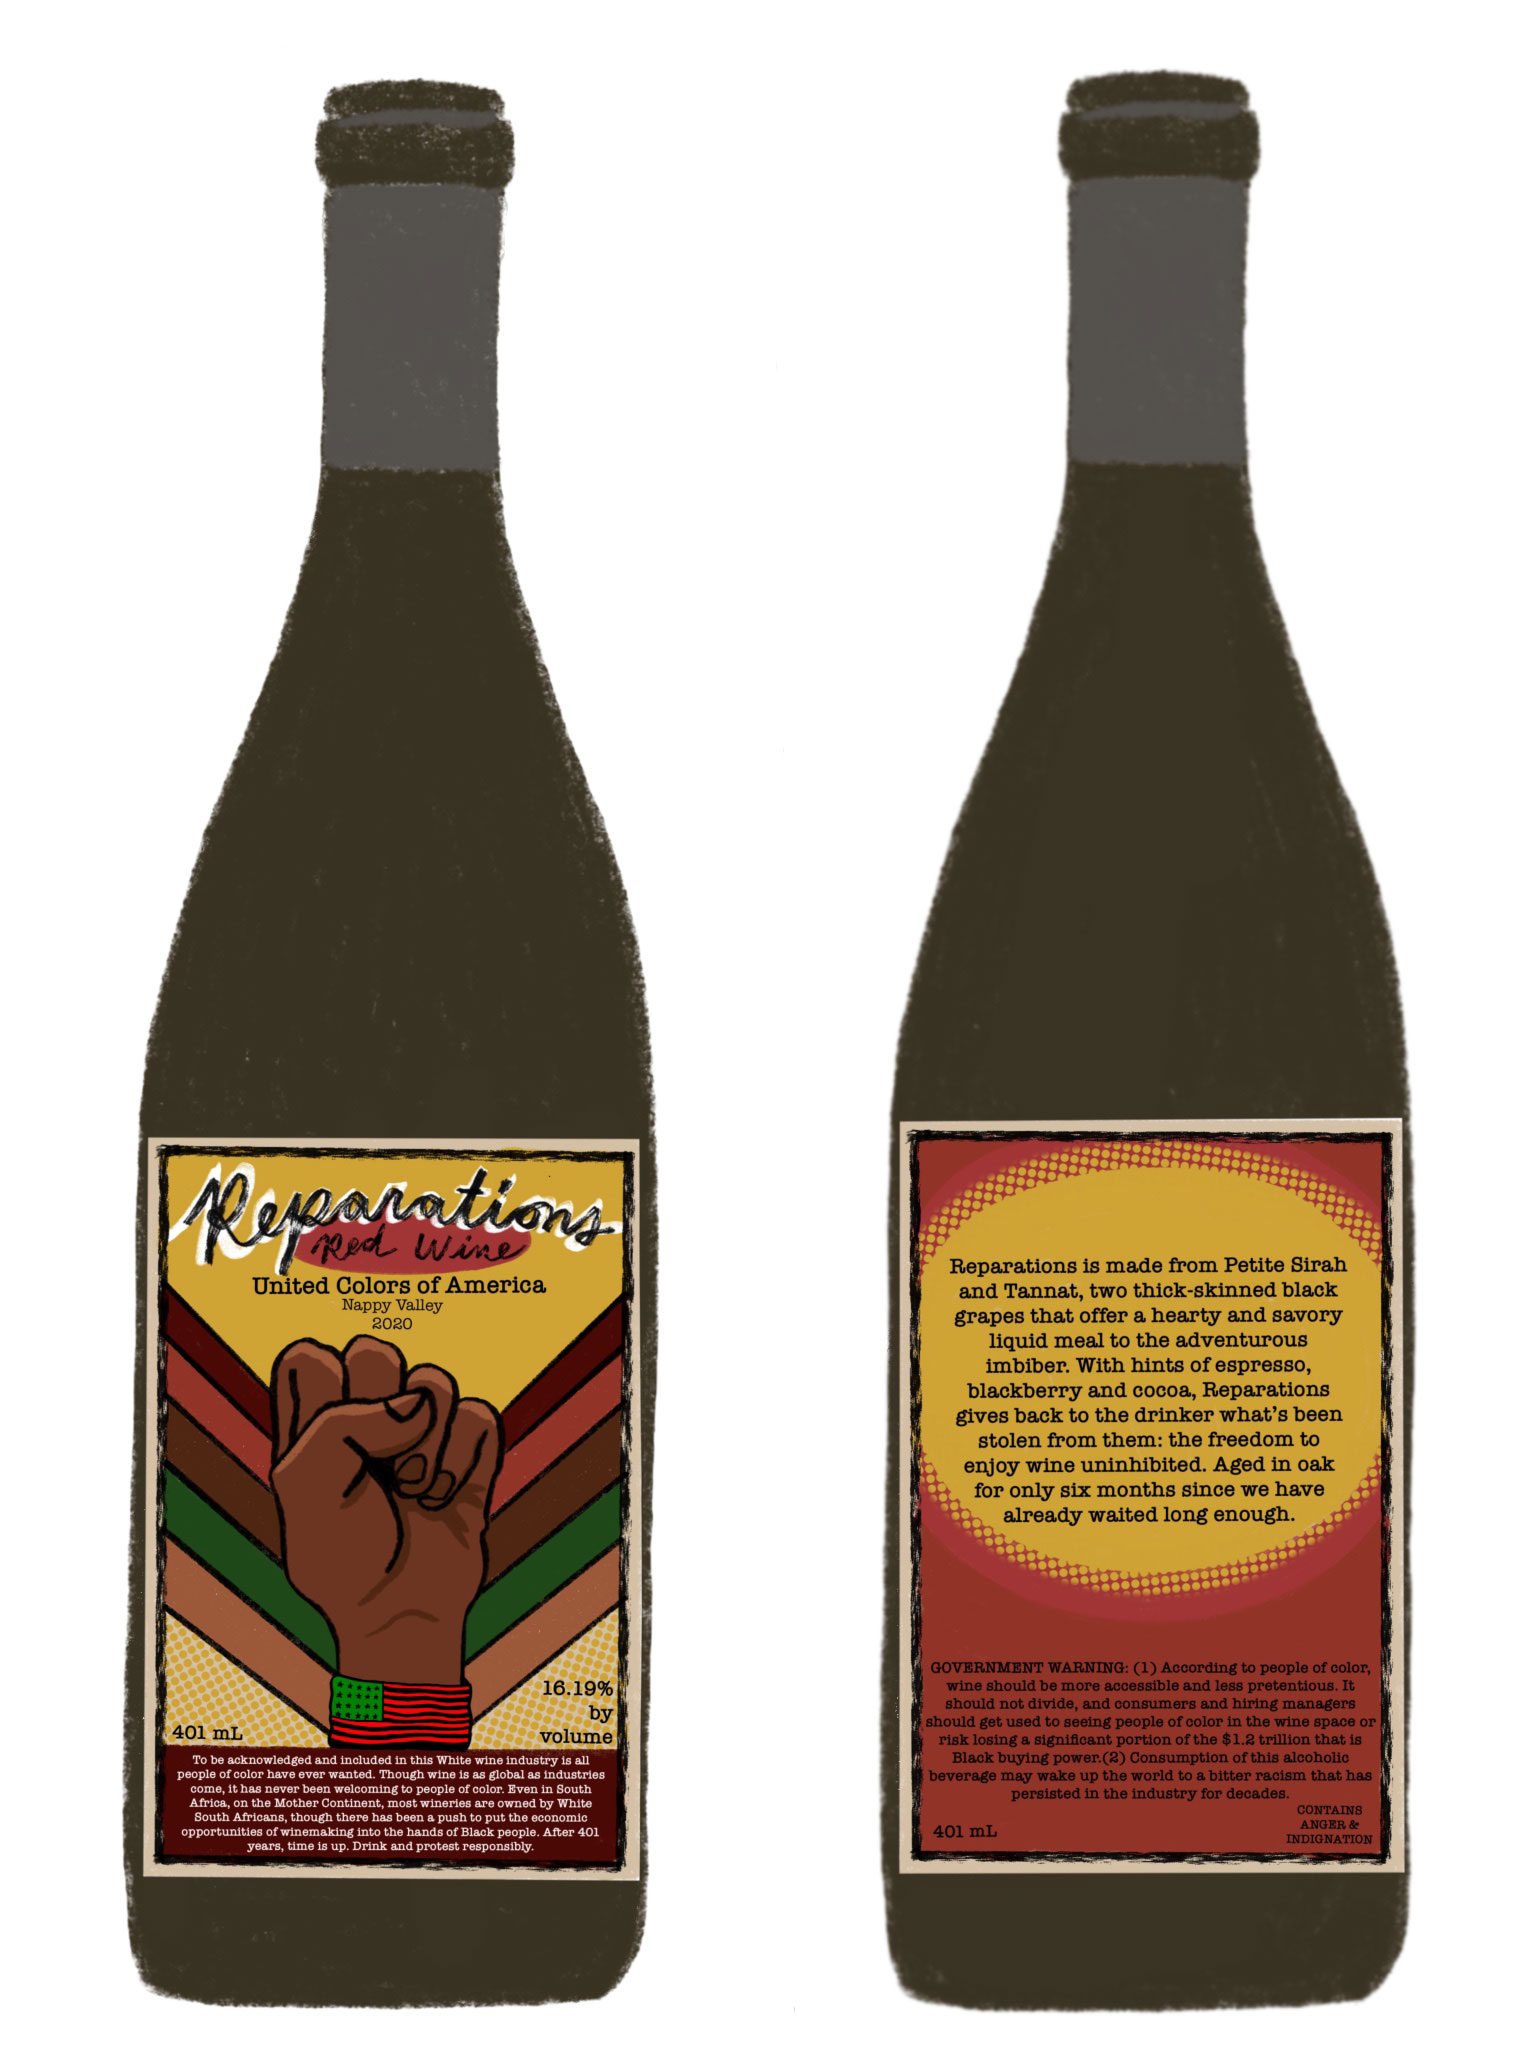 Reparations Wine Label Front and Back of Bottle image